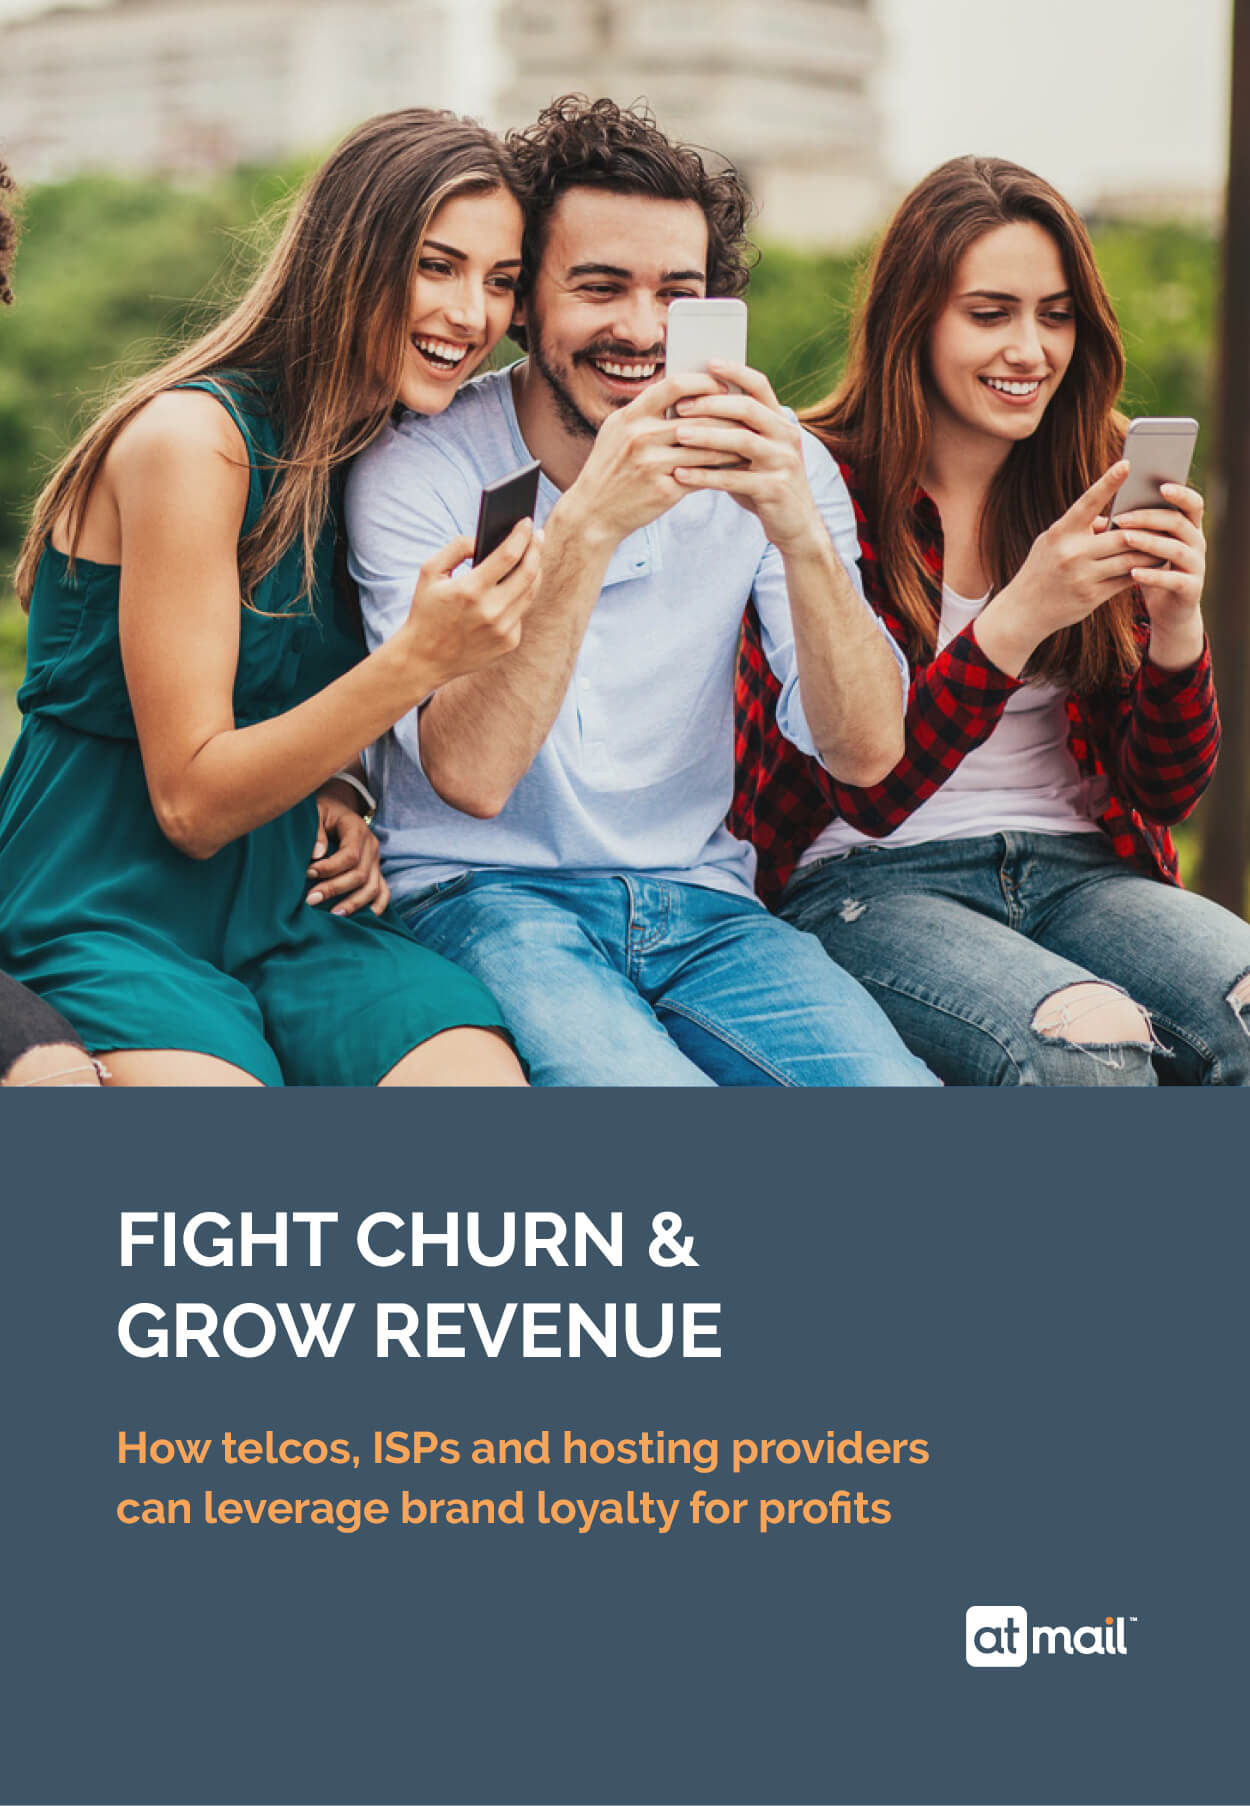 atmail fight churn and grow revenue